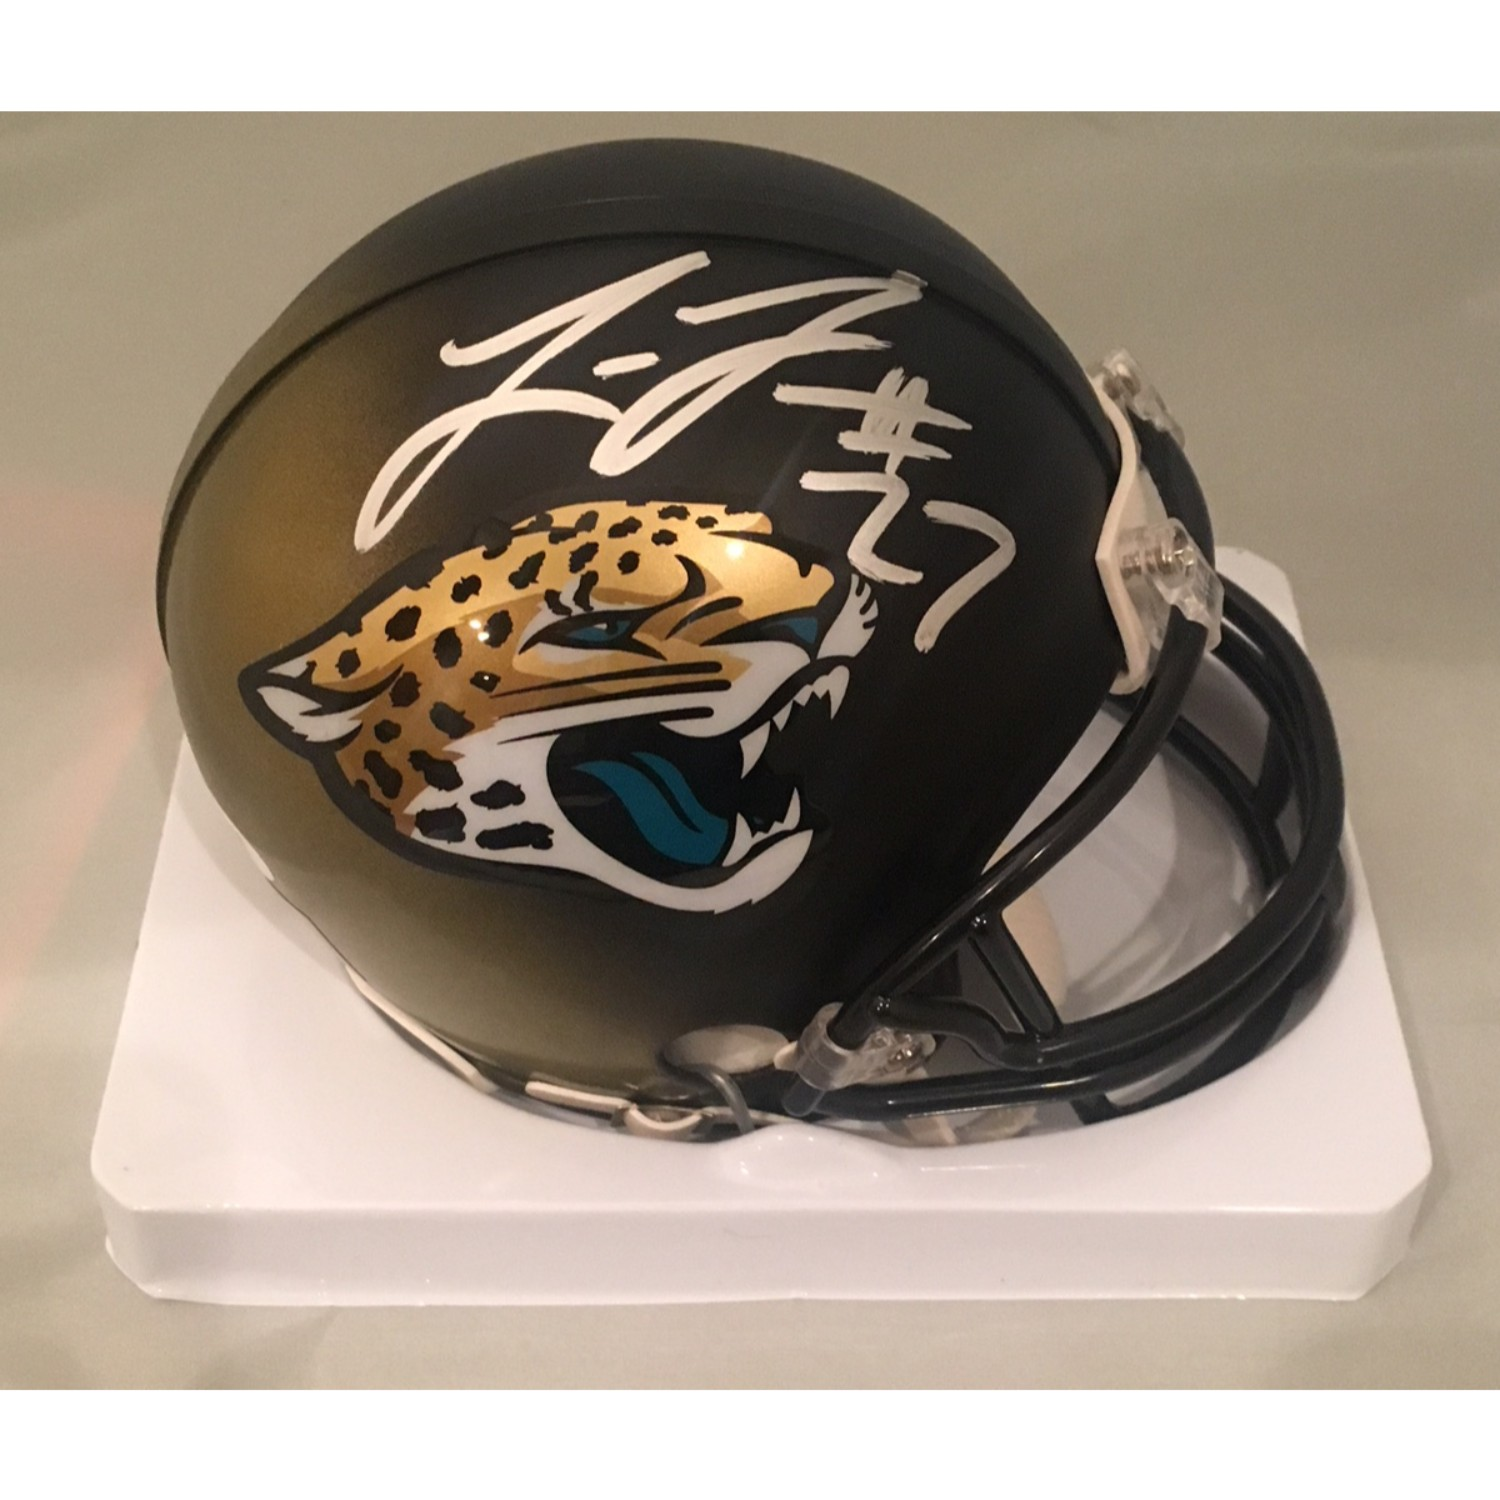 Leonard Fournette Autographed Jaguars Football Mini Helmet PSA DNA COA Star running back of the Jacksonville Jaguars Leonard Fournette has signed this officially licensed Jaguars mini helmet.  Autograph is authenticated by PSA/DNA, the world's leading authenticator of sports autographs. Comes with their unique sticker # fixed to the item and verified on their website. Also, comes with their certificate of authenticity with same matching #.